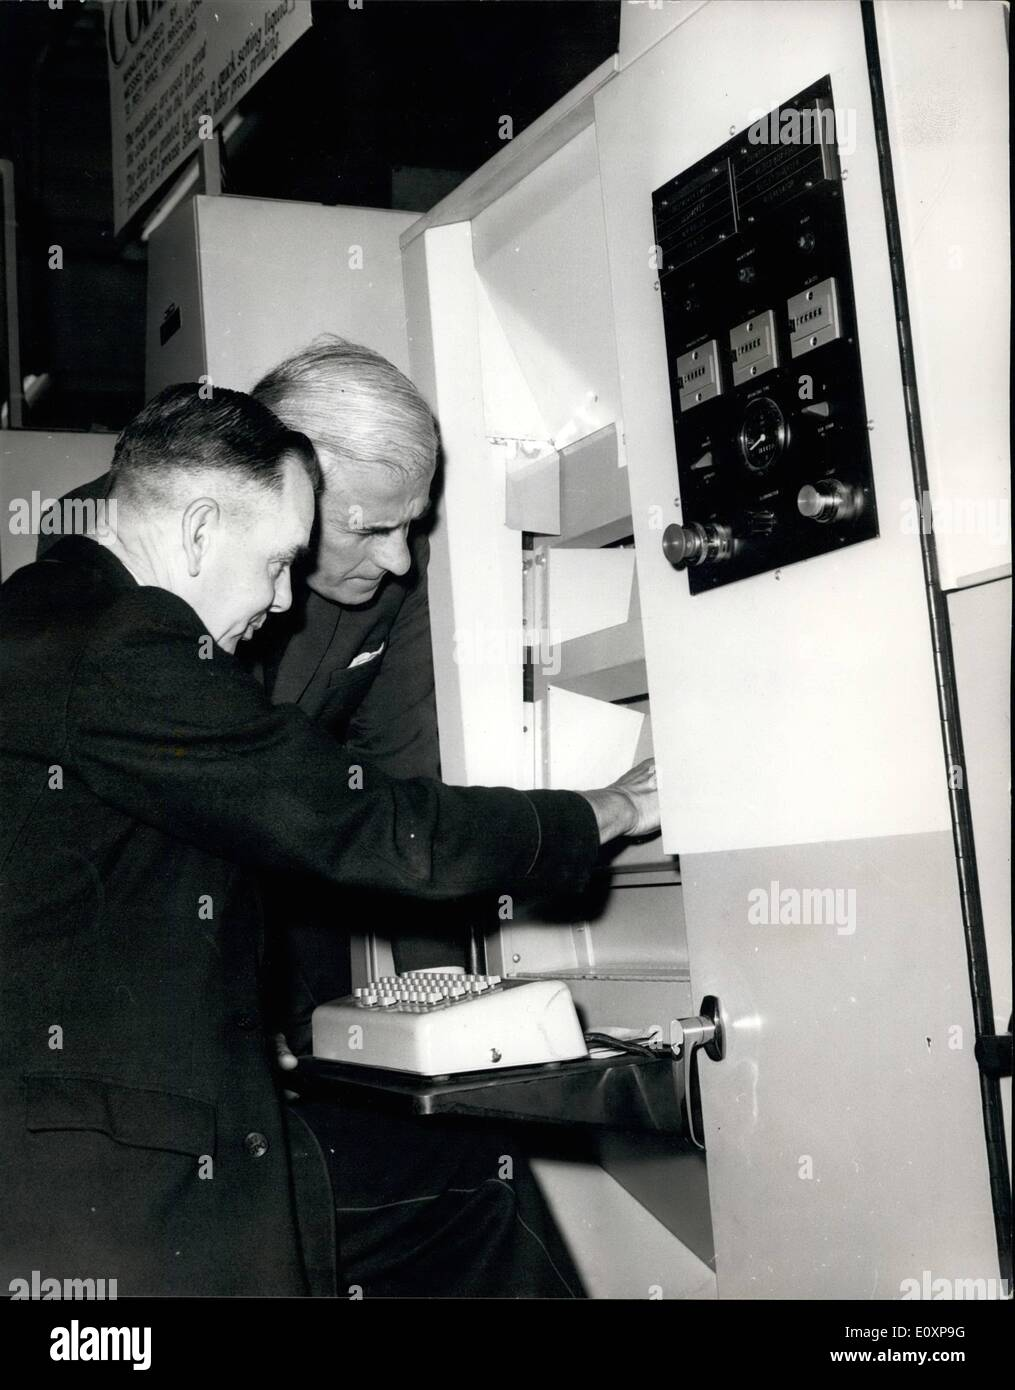 Jul. 07, 1967 - Postmaster general opens postal Fortnight, 1967. Following the success of the Postal week held in a 1963, a postal fortnight on similar lines, was opened today by the Postmaster General, the Rt. Hon. Edward Short, at a Press Conference at Norwich, where there is a prototype fully-mechanised letter sorting office. The train on which members of the Press travelled to Norqich with thw PMG included a Travelling Post Office ach so that the press party were able to see sorting being carried out on the move. Photo shows Mr. Edward Short, the PMG, chats to Mr. G - Stock Image